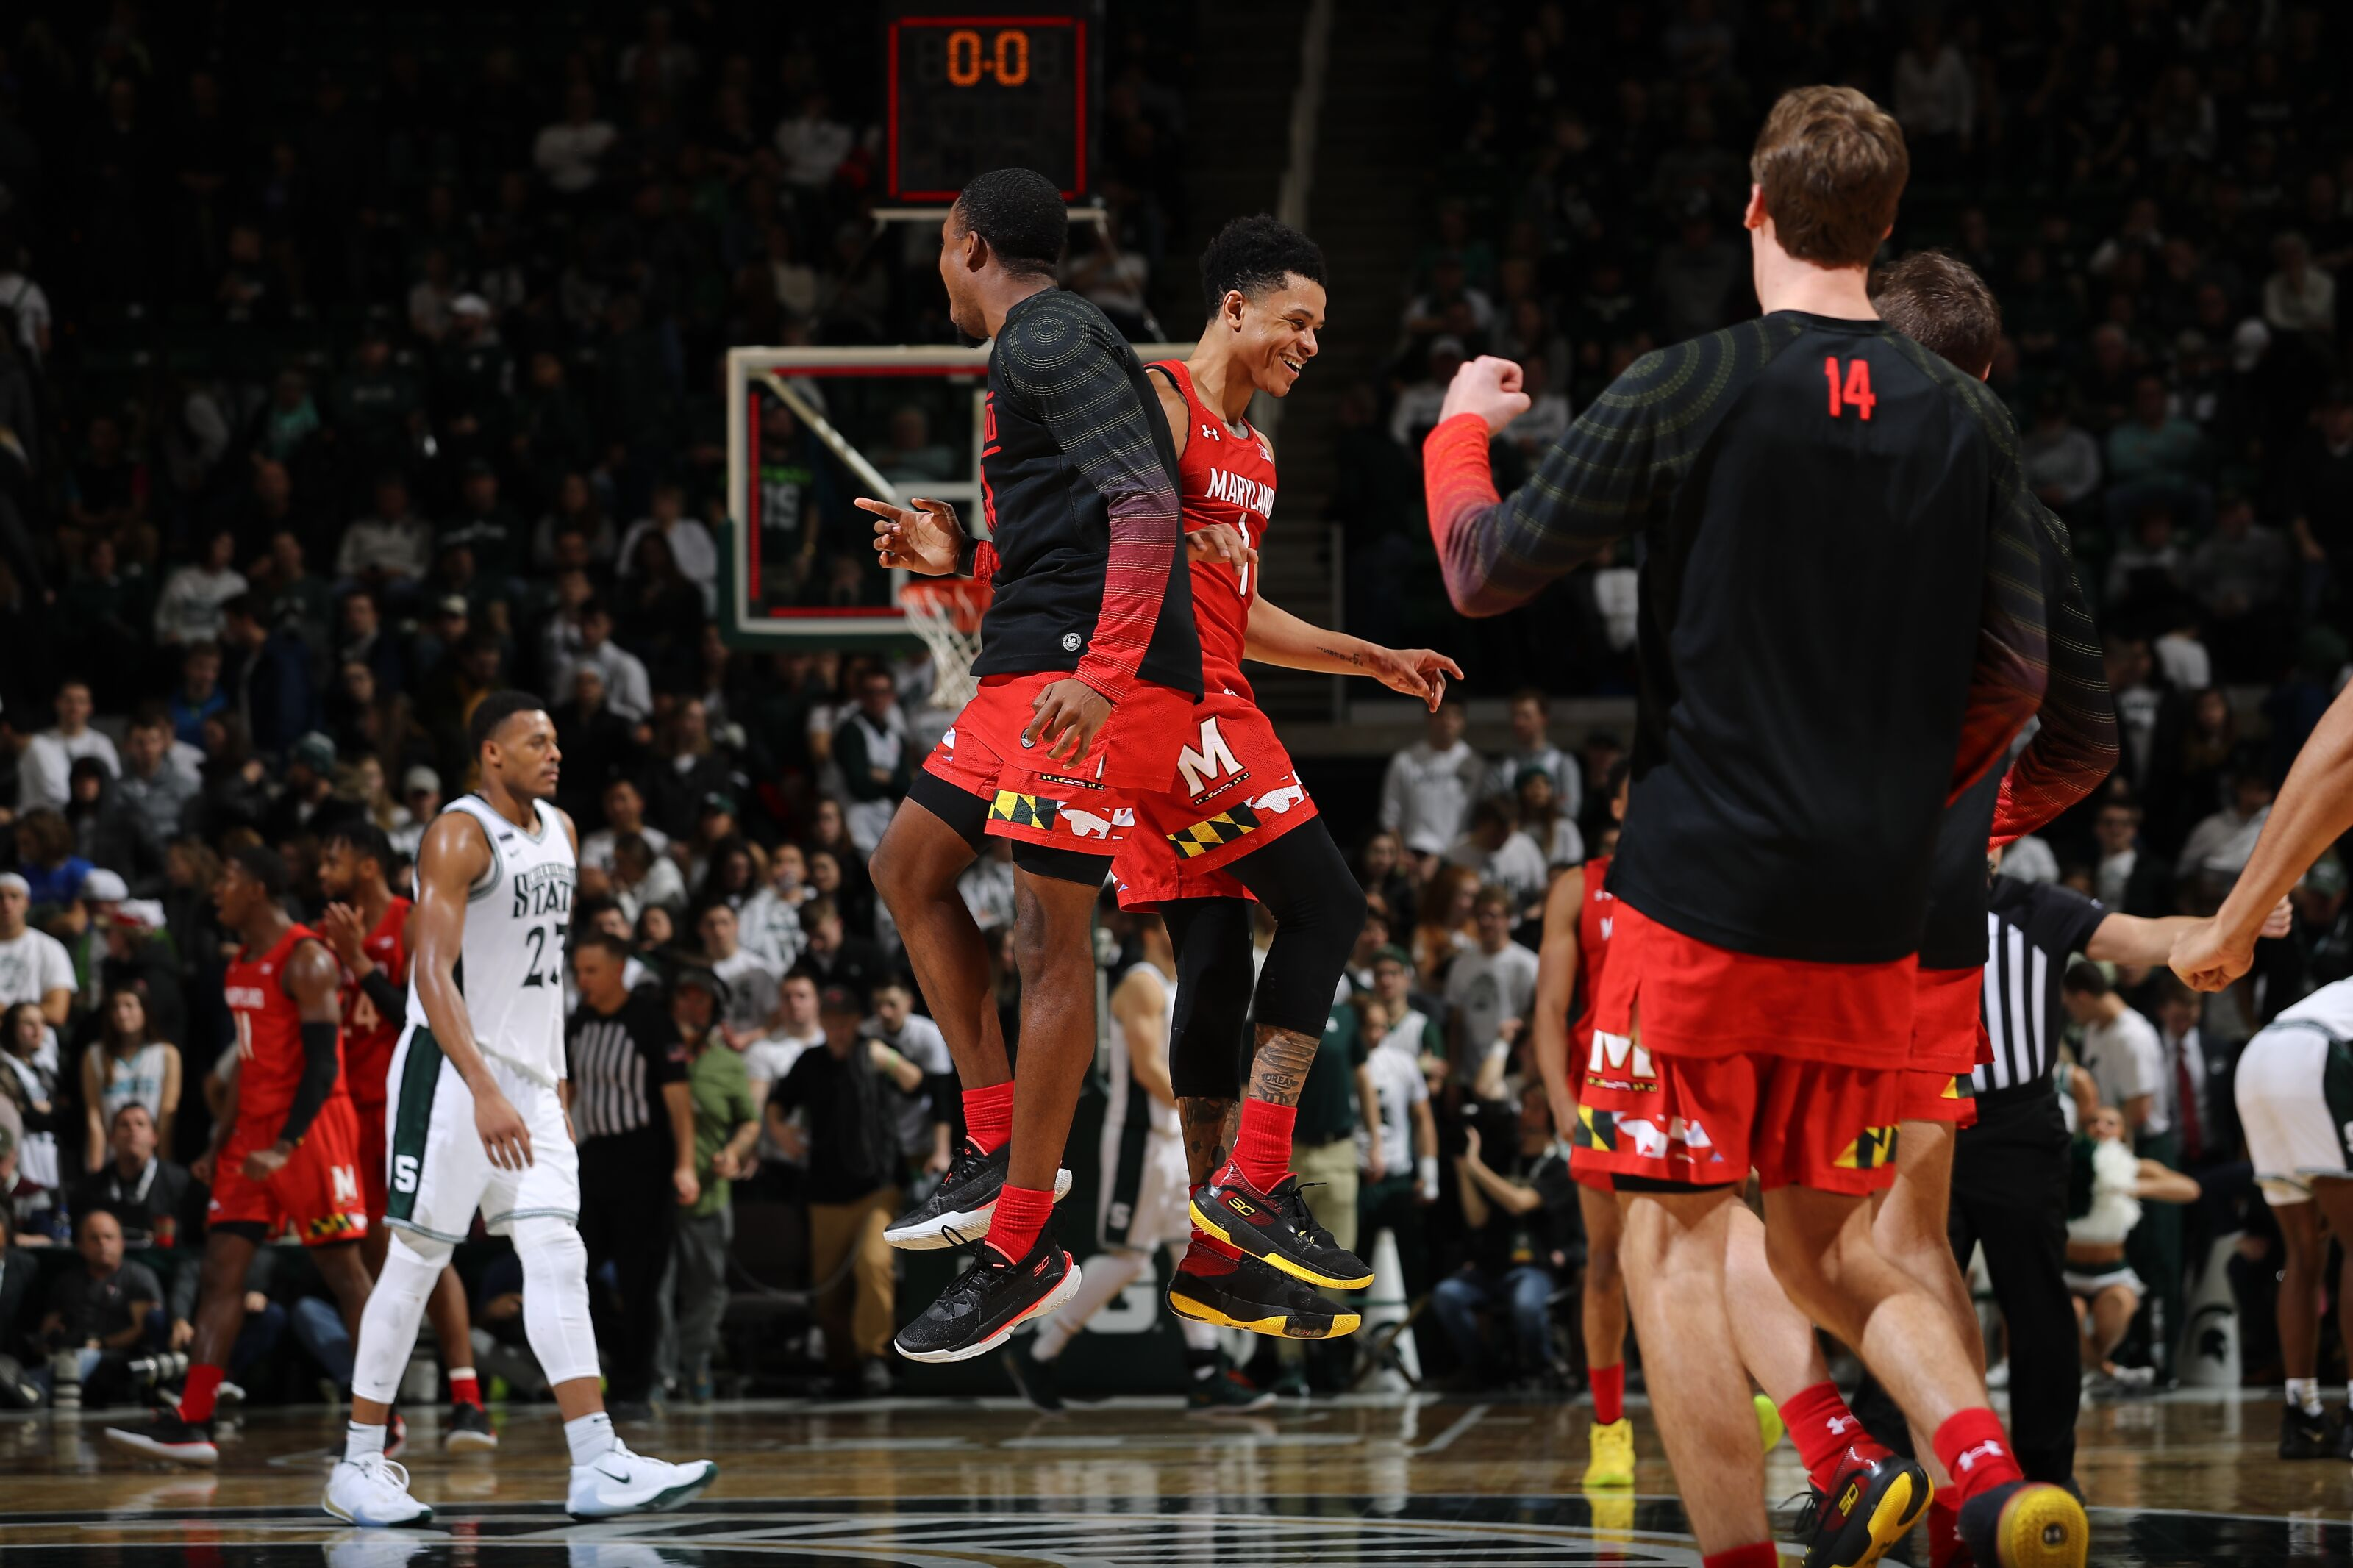 Maryland Basketball: Takeaways from comeback road win over Michigan State